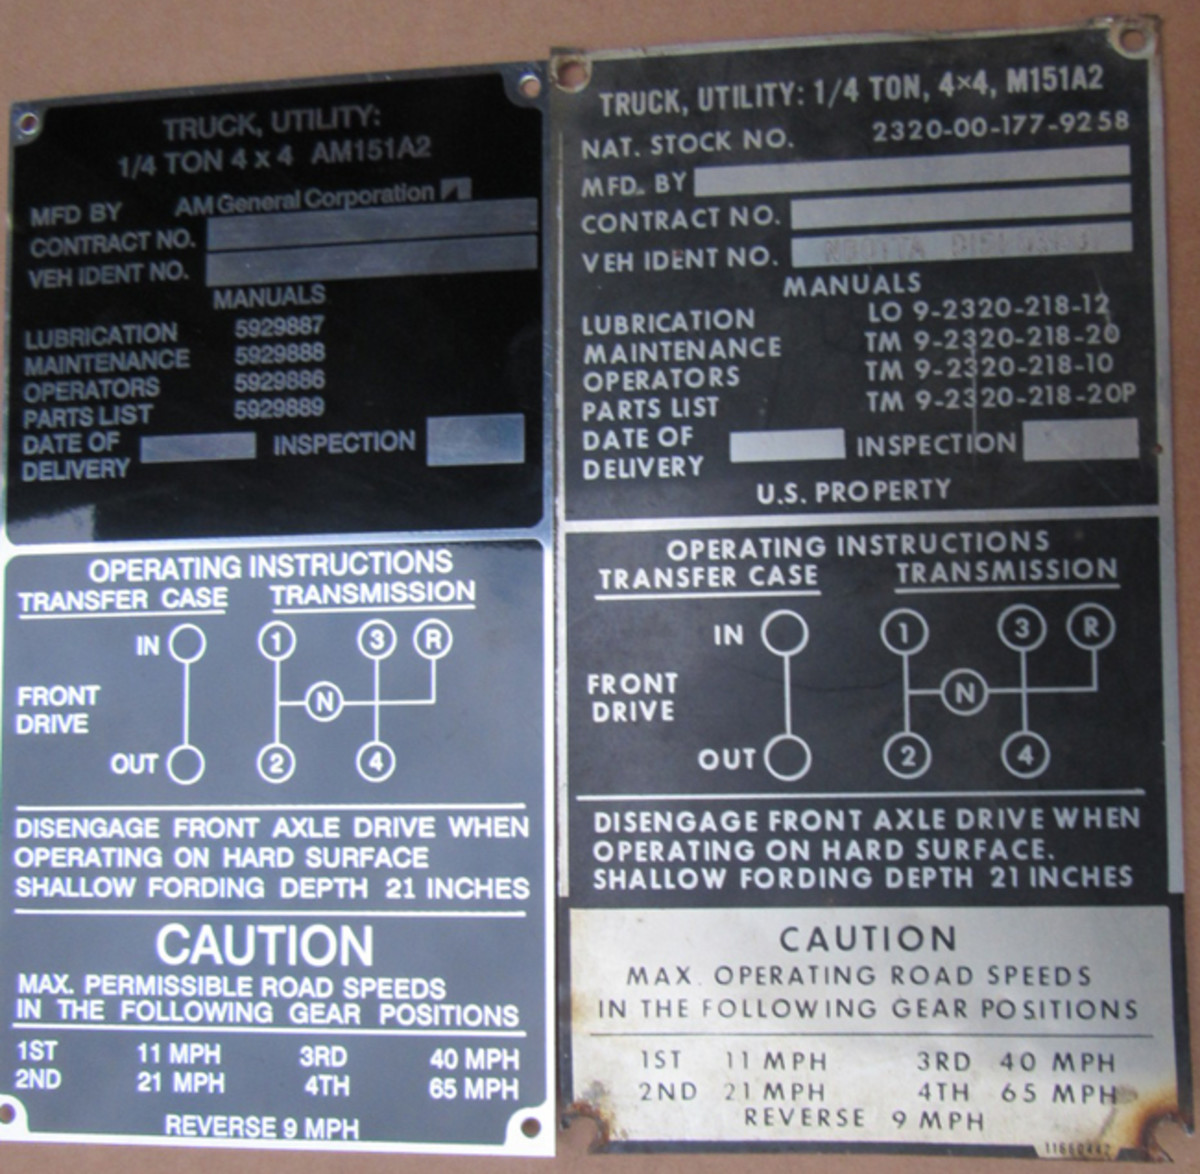 The main difference between the 2 data plates is the Australian data plate (left) does not say US property. The font on the Aussie data plate is different, as well. Only one of the two data plates that will be on the vehicle is shown.